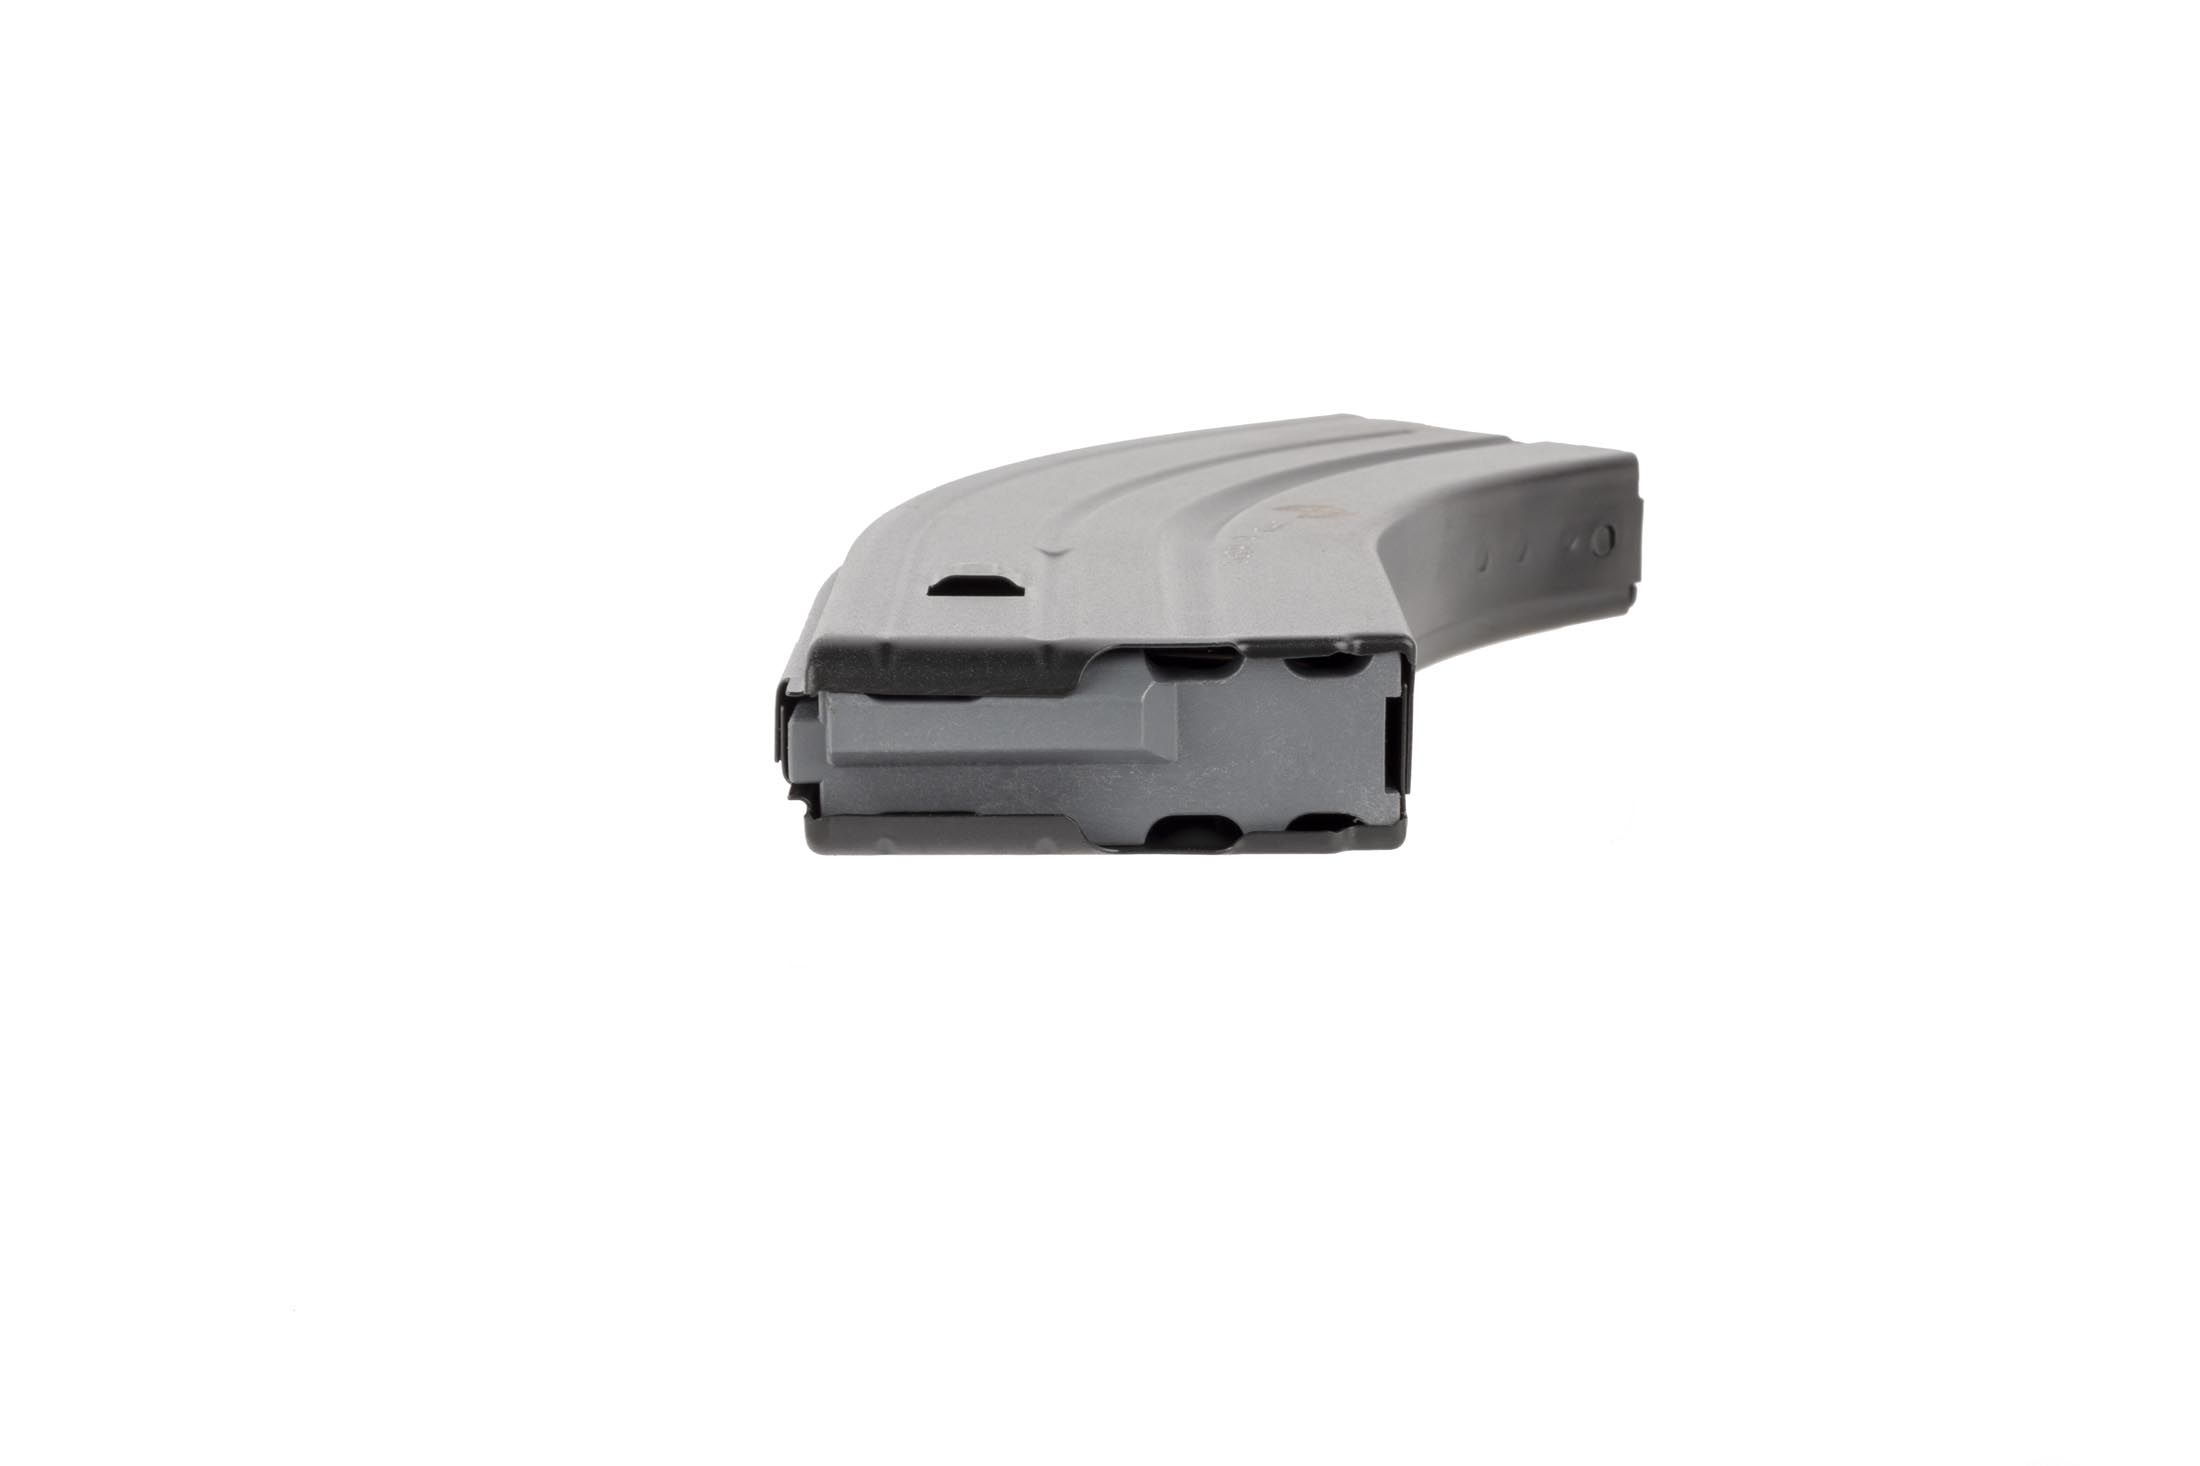 C Products steel 6.8 SPC magazine featuers a grey anti-tilt follower for reliable feeding of all 28 rounds